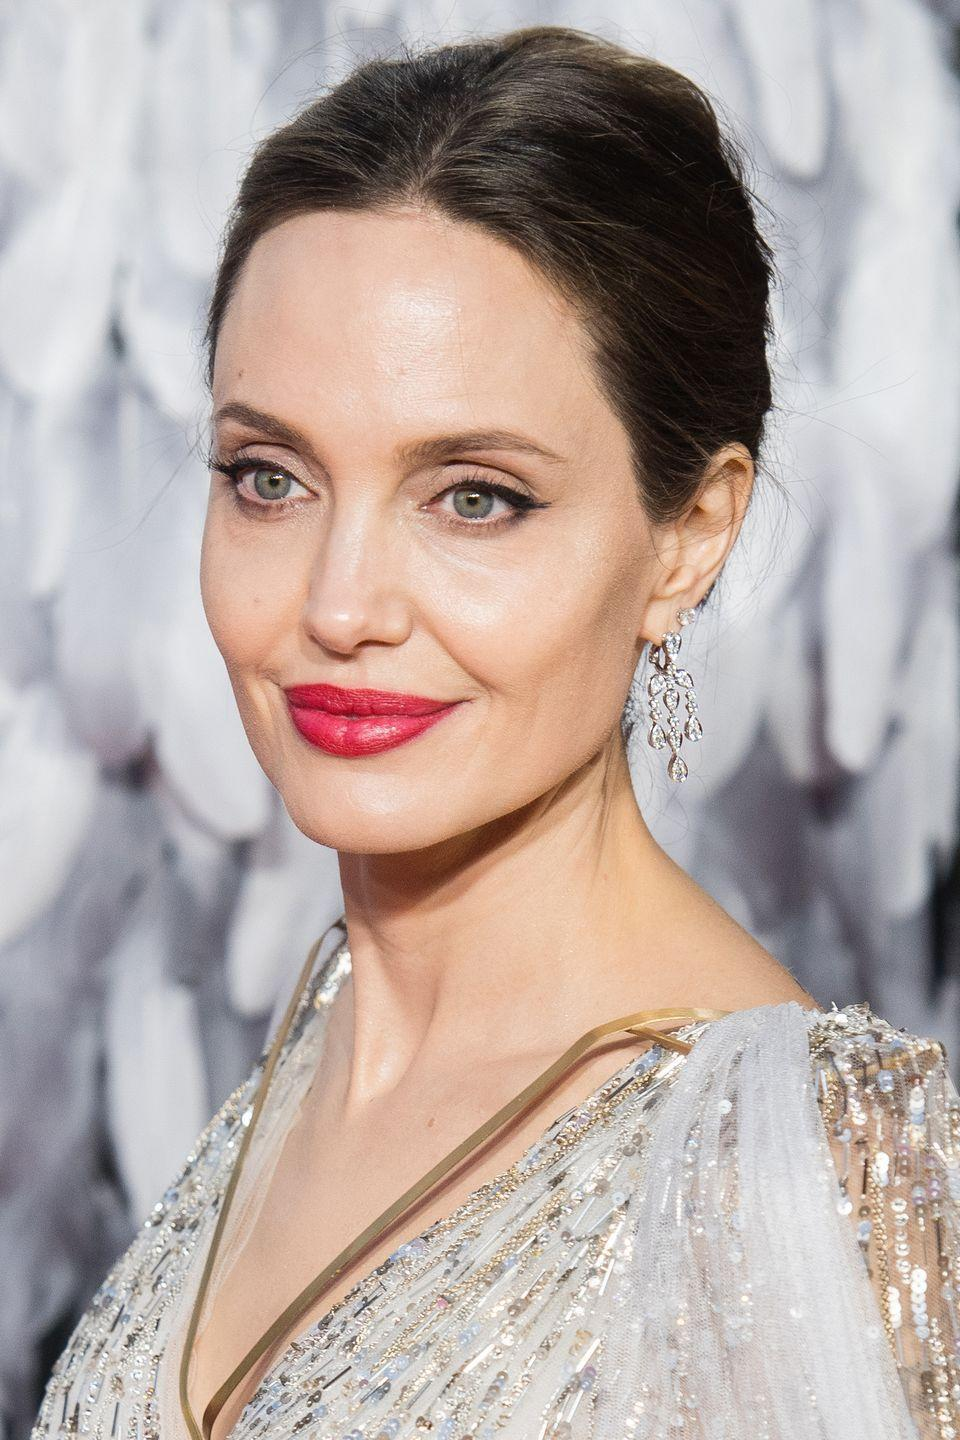 "<p>It's important to note that discussions around plastic surgery don't simply evolve around wanting to look younger. In 2013, Angelina Jolie spoke openly about her preventative double mastectomy and reconstructive surgery in a <a href=""http://www.nytimes.com/2013/05/14/opinion/my-medical-choice.html?_r=1&"" rel=""nofollow noopener"" target=""_blank"" data-ylk=""slk:New York Times"" class=""link rapid-noclick-resp"">New York Times</a> story appropriately called 'My Medical Choice.'</p><p>""There have been many advances in this procedure in the last few years, and the results can be beautiful,"" the actress explained.</p>"